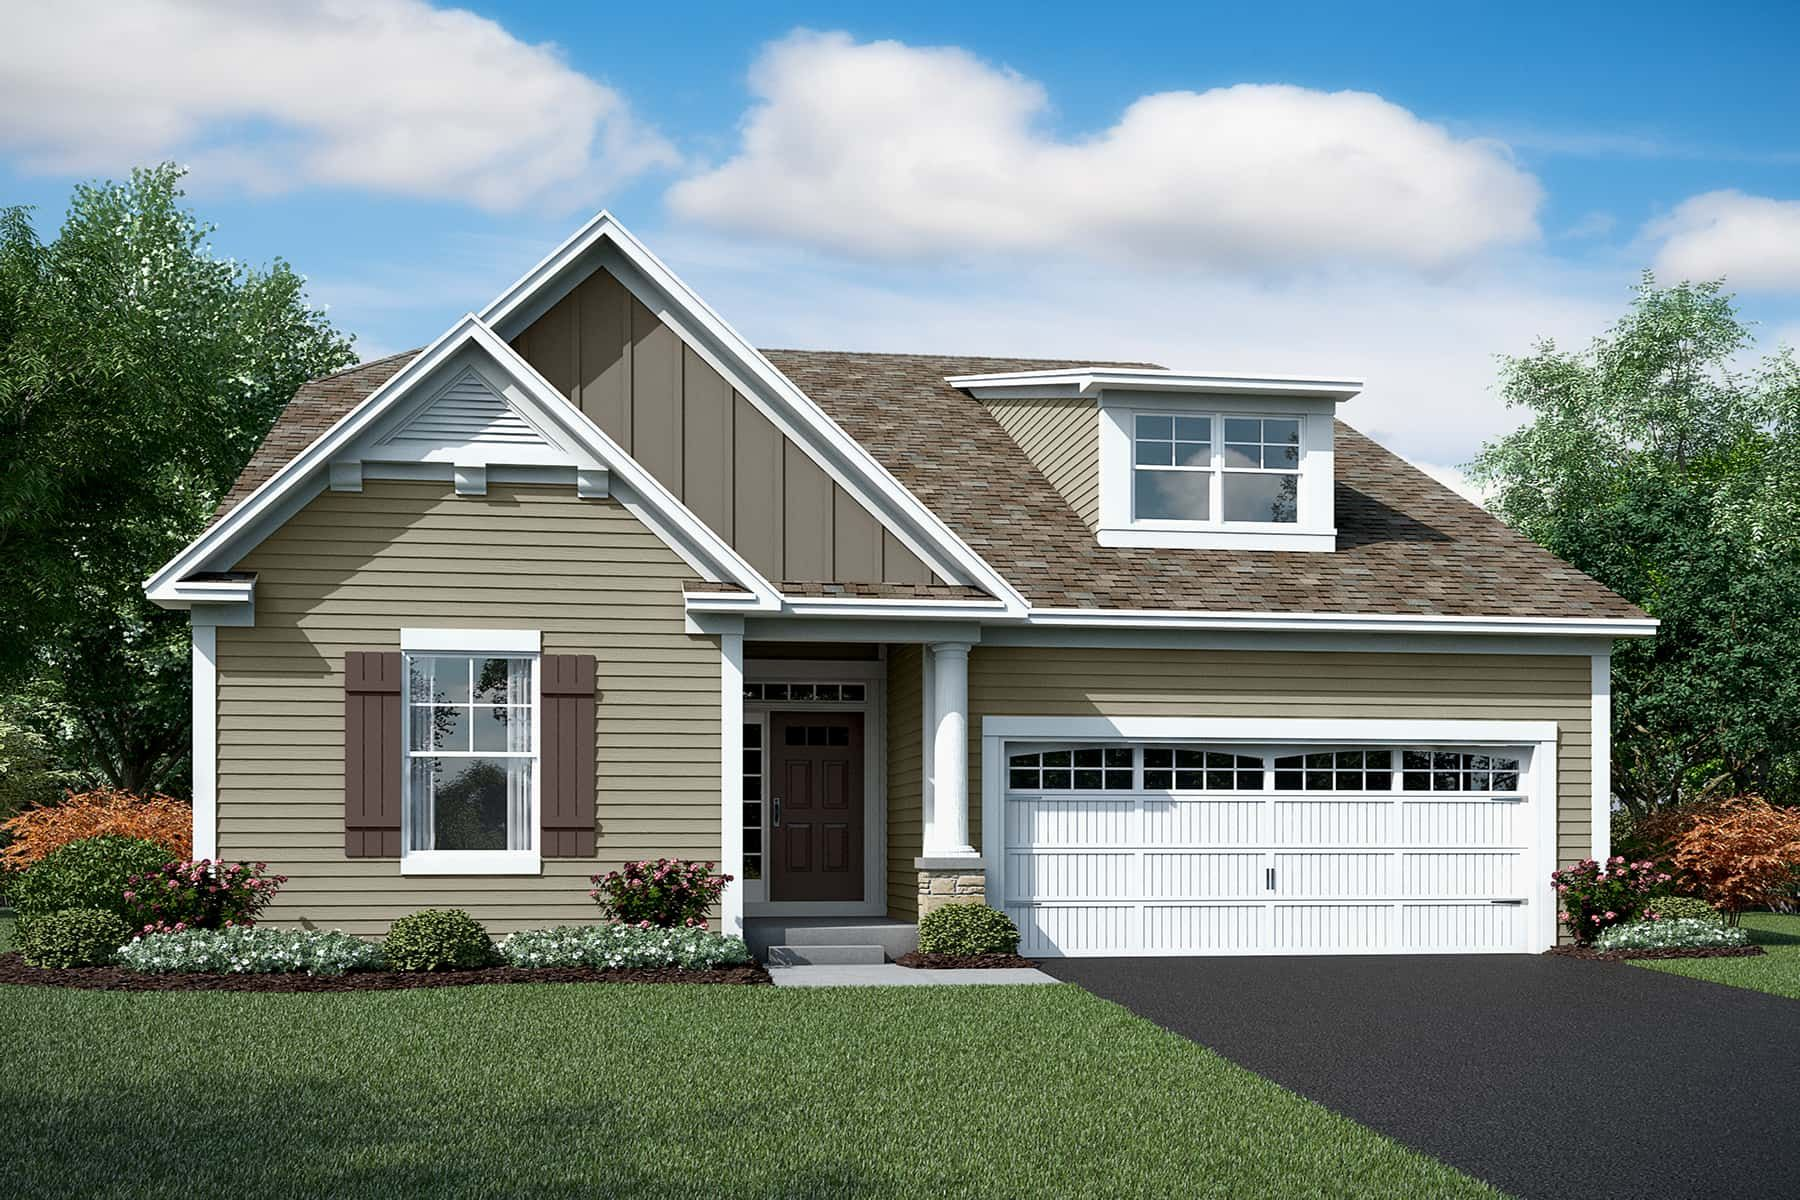 Single Family for Active at Wentworth Of Kildeer - Drexel 23760 N Old Mchenry Road Kildeer, Illinois 60047 United States